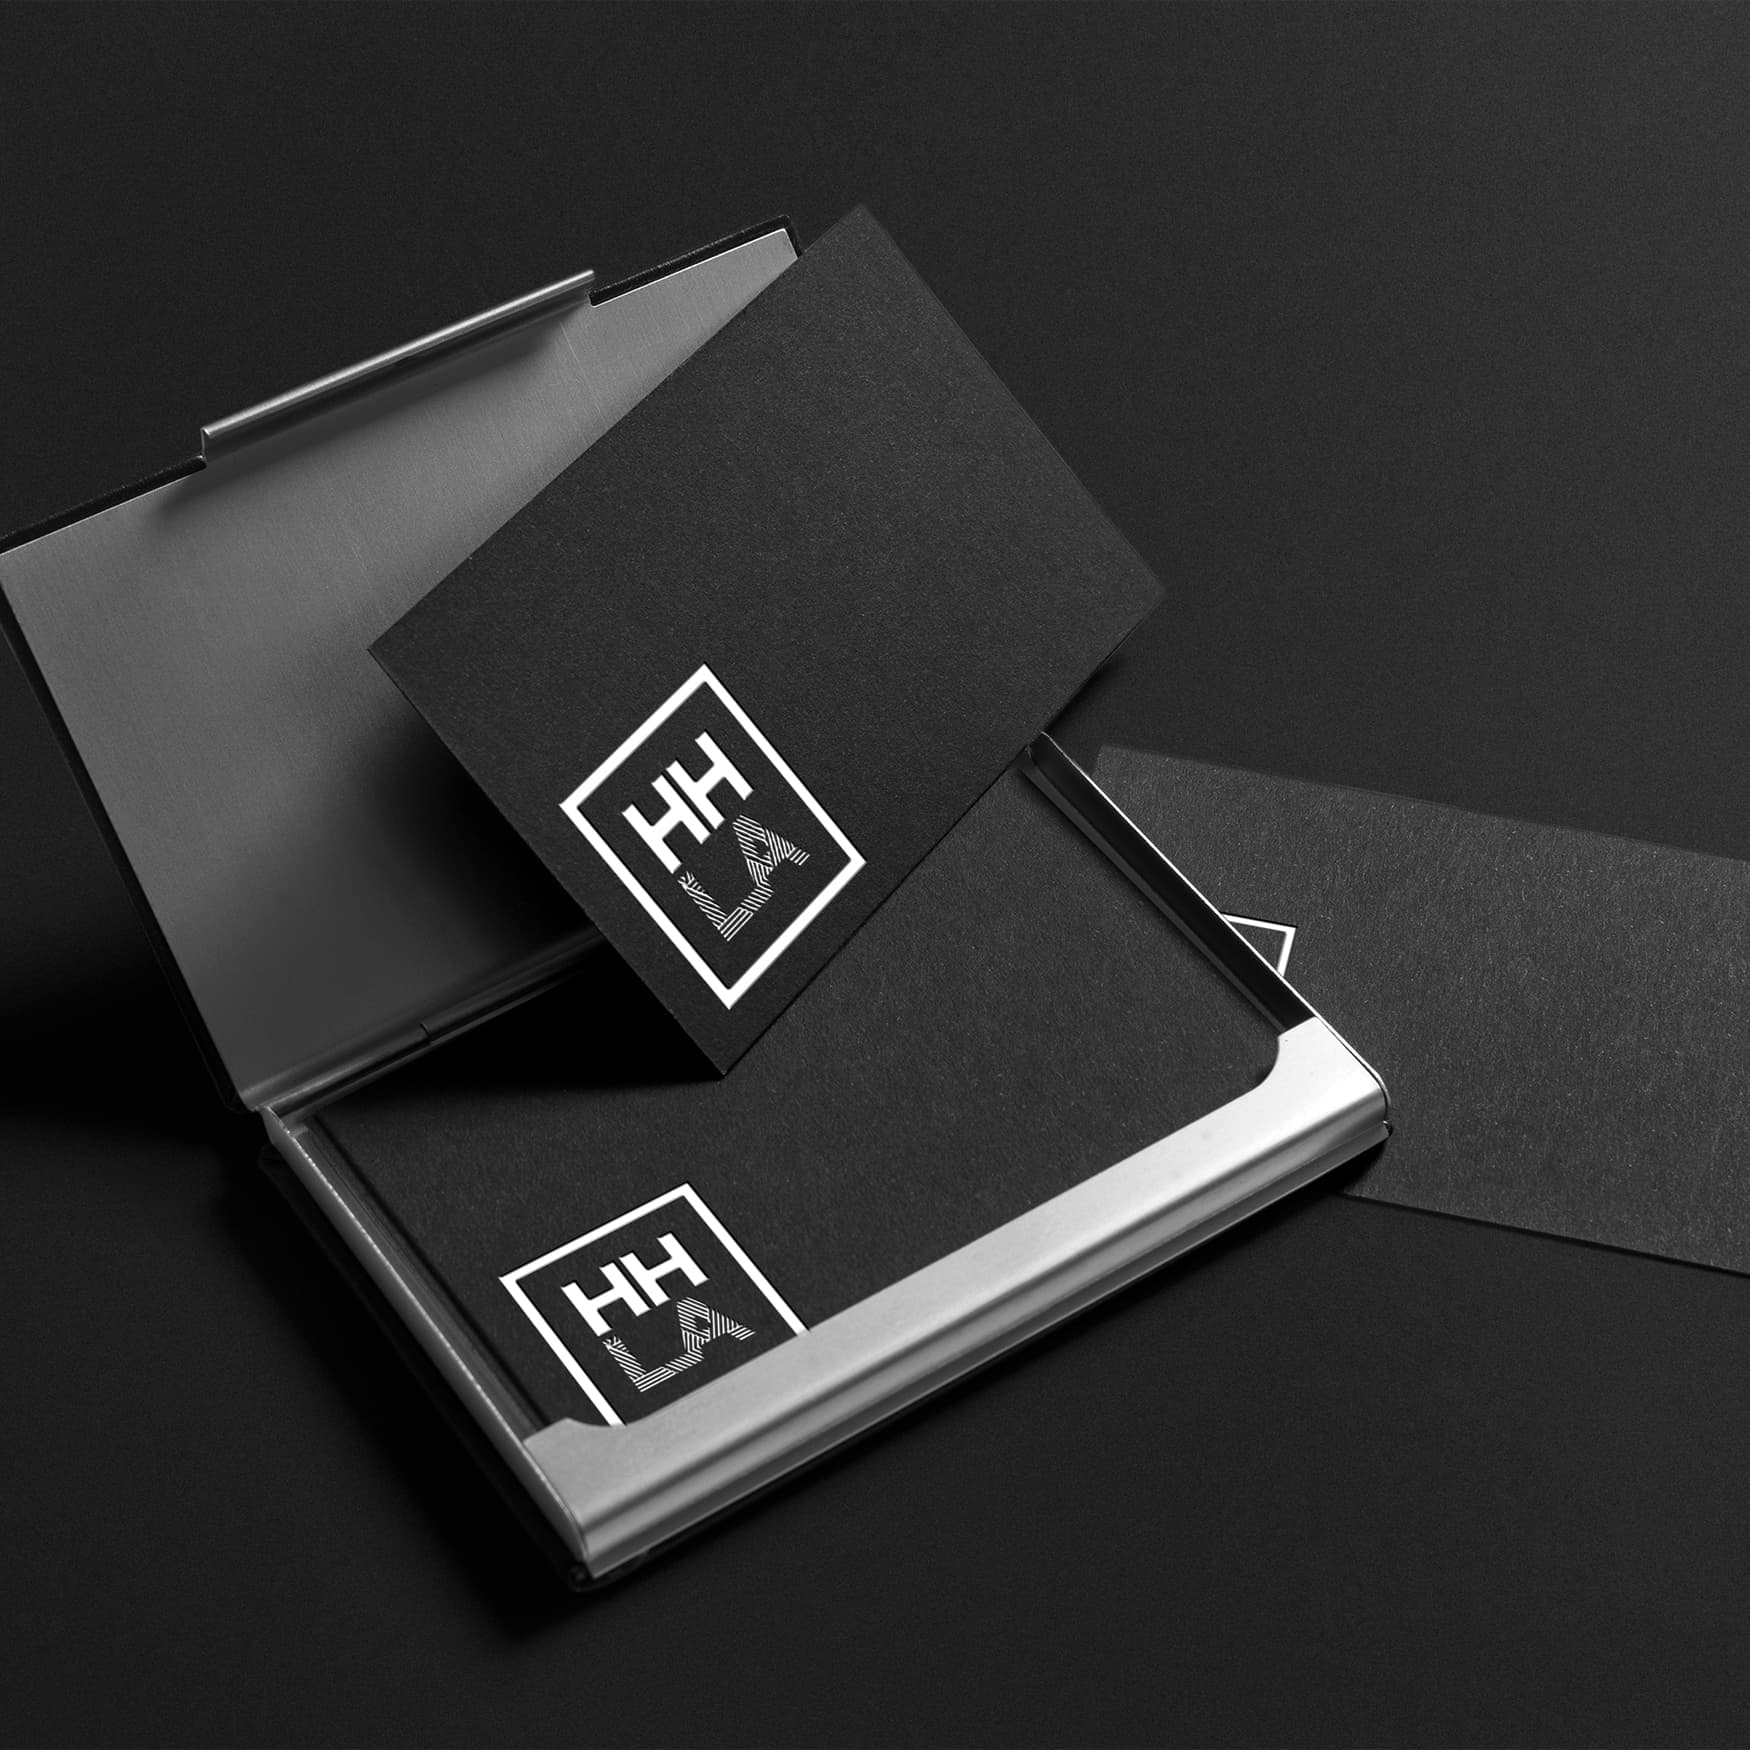 HHLA branding and logo design on stationary mock up